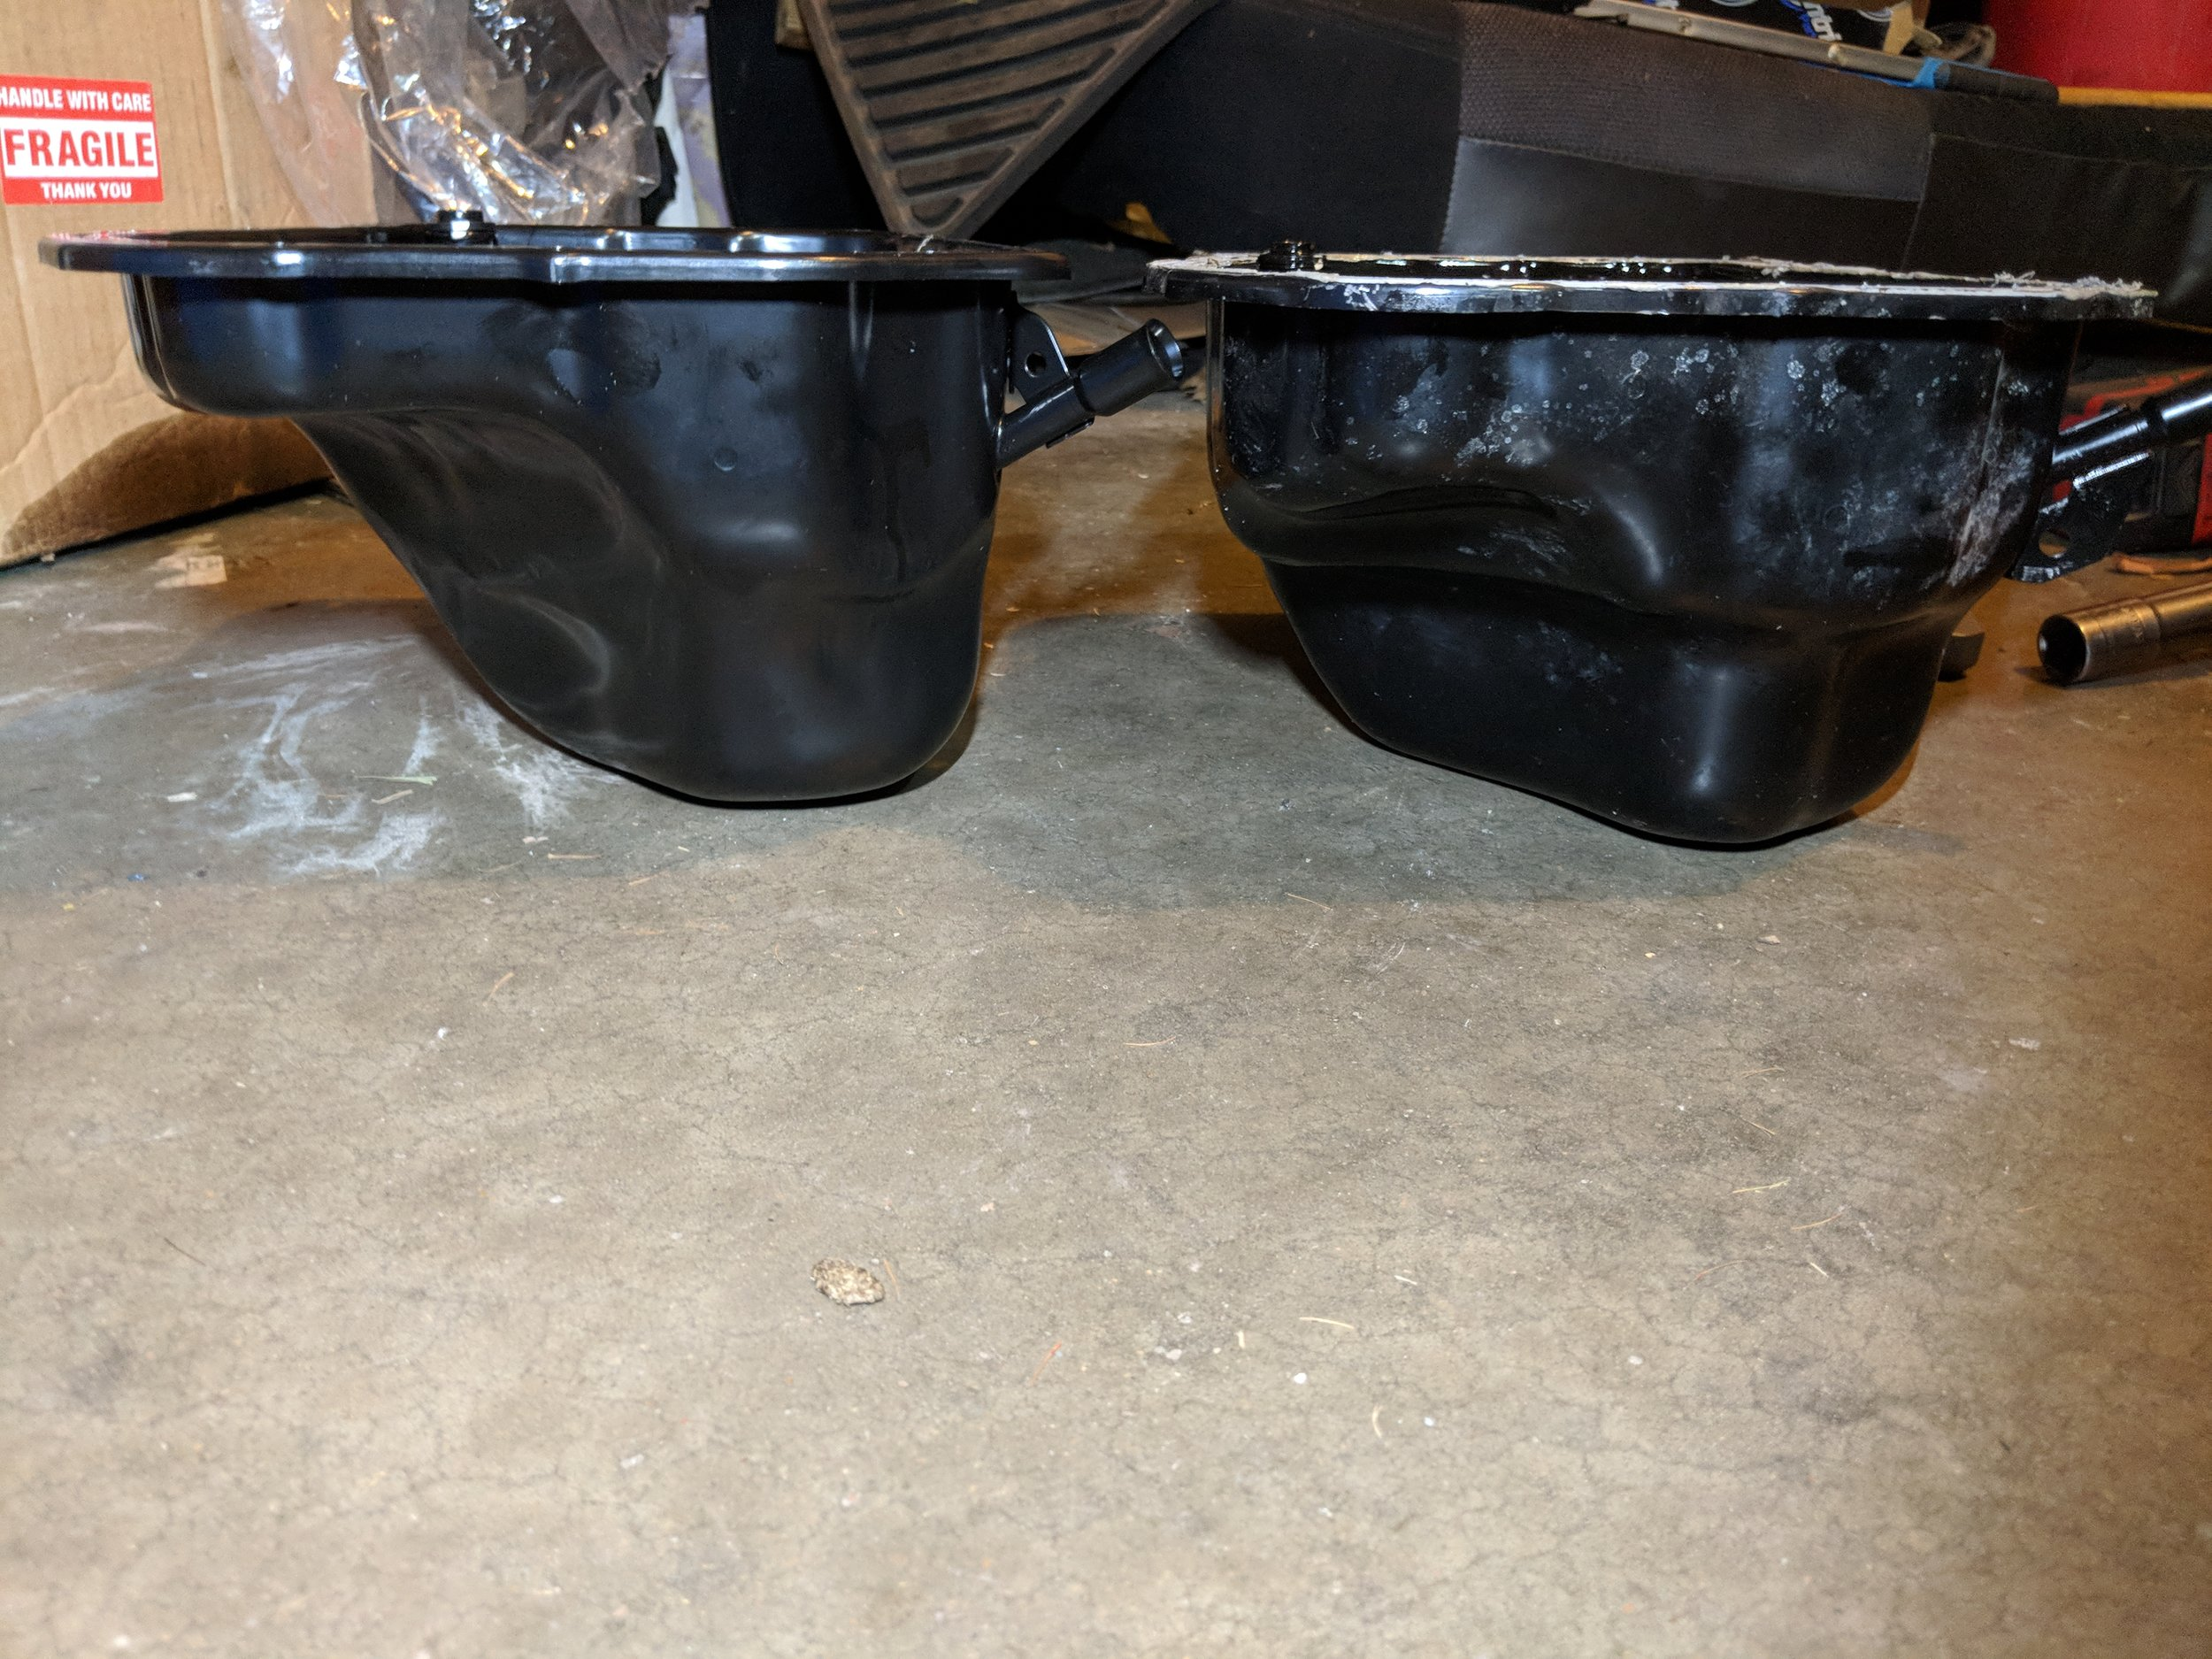 04-05 STI and FXT oil pan on the right. Updated design on the left  06+ STi oil pan.  Some headers have fitment issues with the old style pan and its larger design.